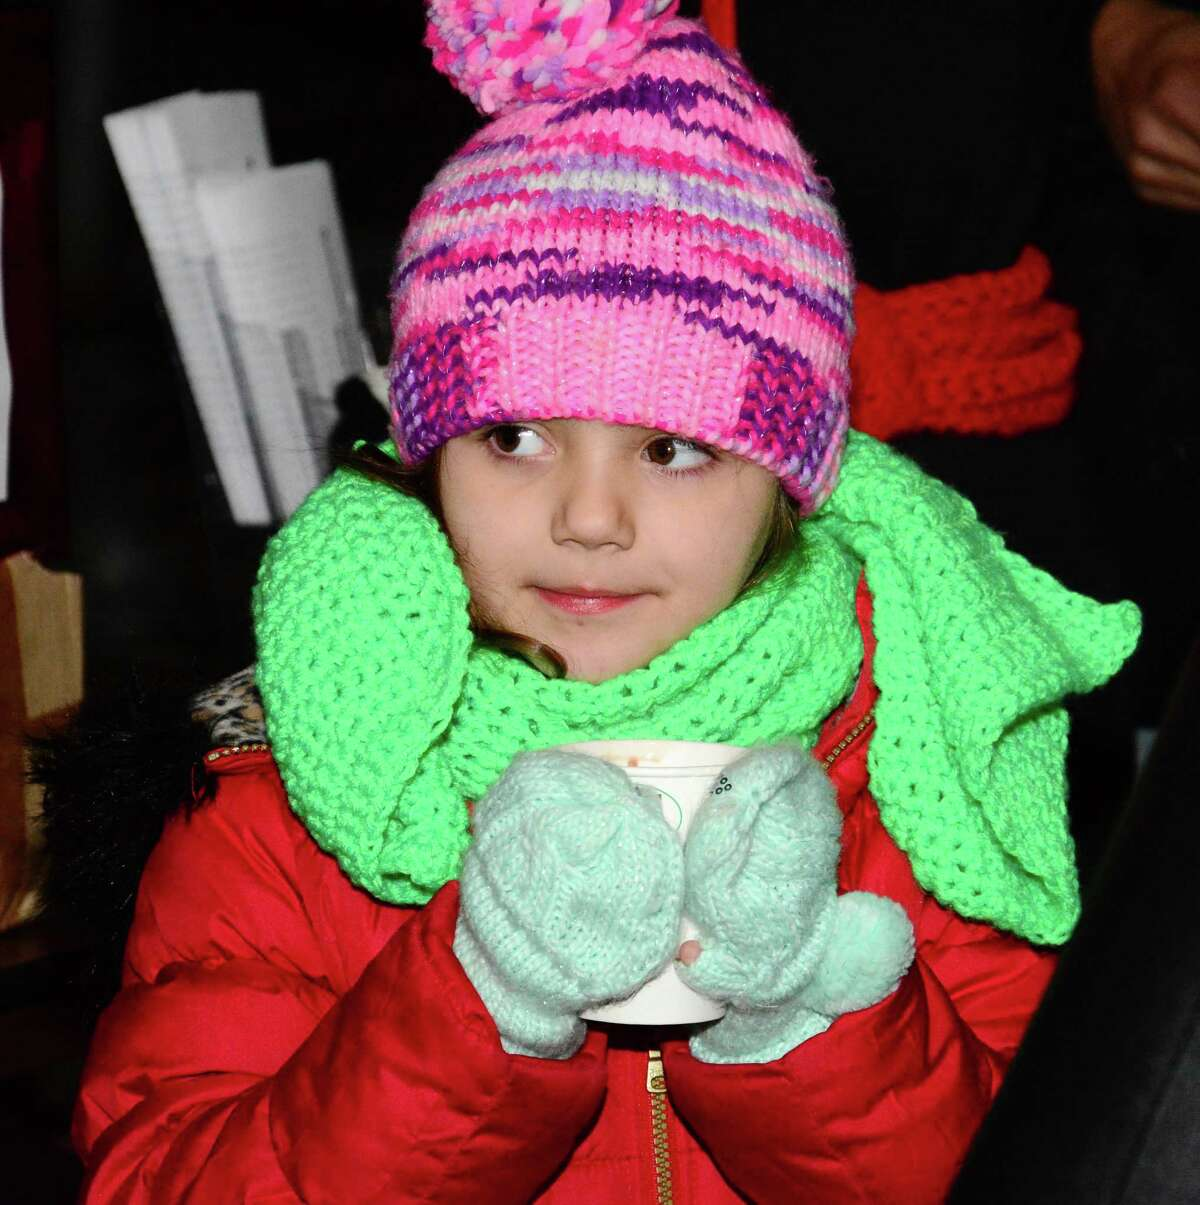 Above, Layla Reidy, 6, holds a warm cup of hot cocoa at New Milford's Annual Carol Sing on the Green, Monday. Christie Blum from Brookfield, Billy Schulze, 4, and Stephanie Schultze, both from New Milford, take a selfie while they wait for the hayride to begin. Right, Santa Claus listens to Leila Nararrete, 7, from New Milford.